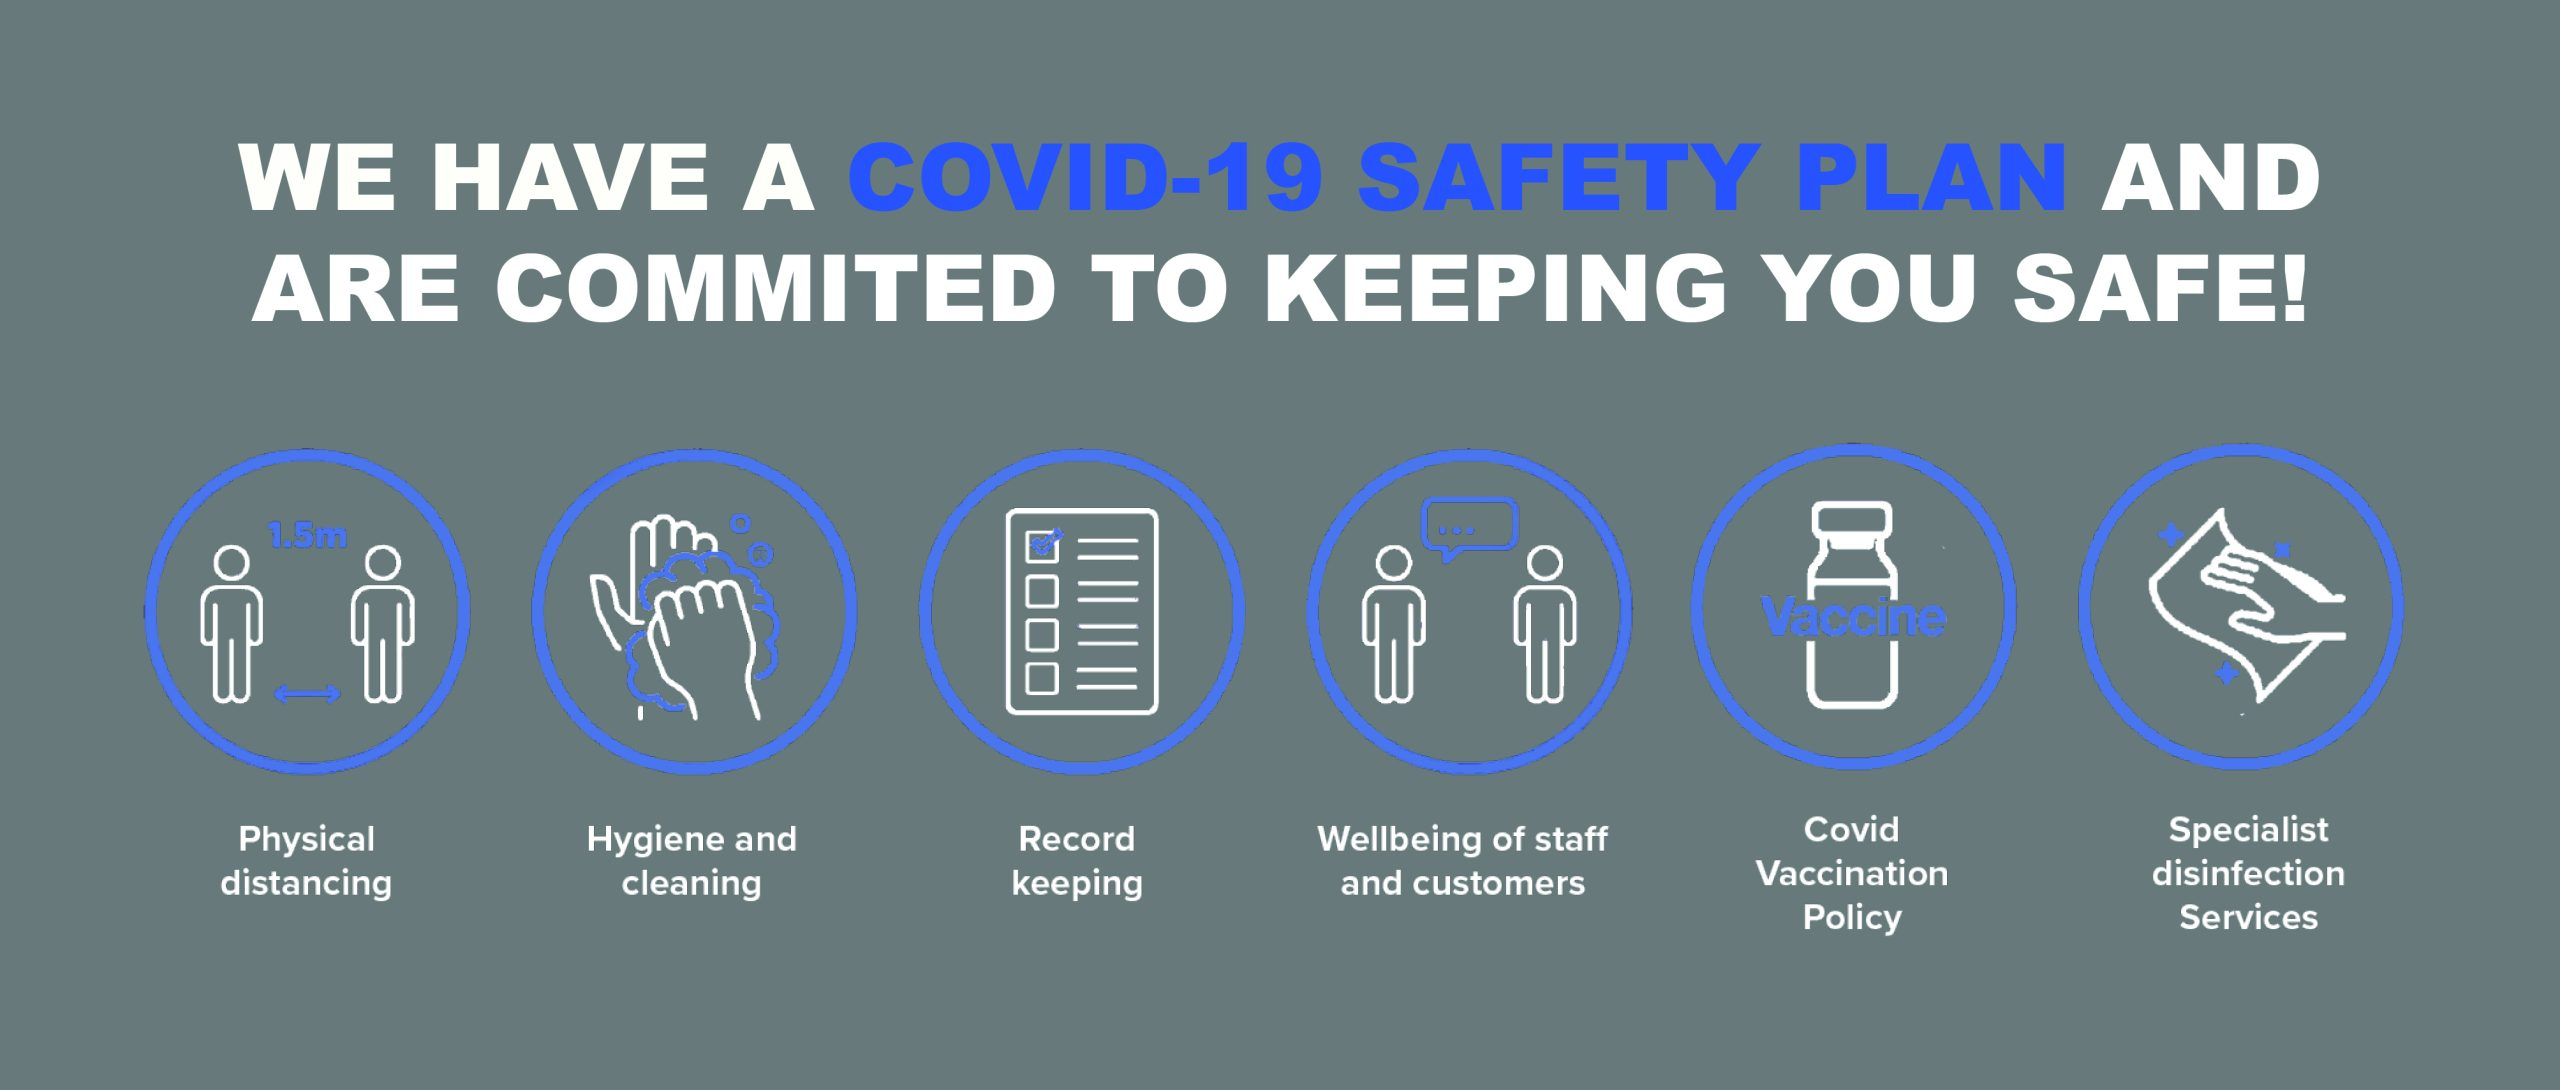 We have a COVID-19 safety plan and are committed to keeping you safe